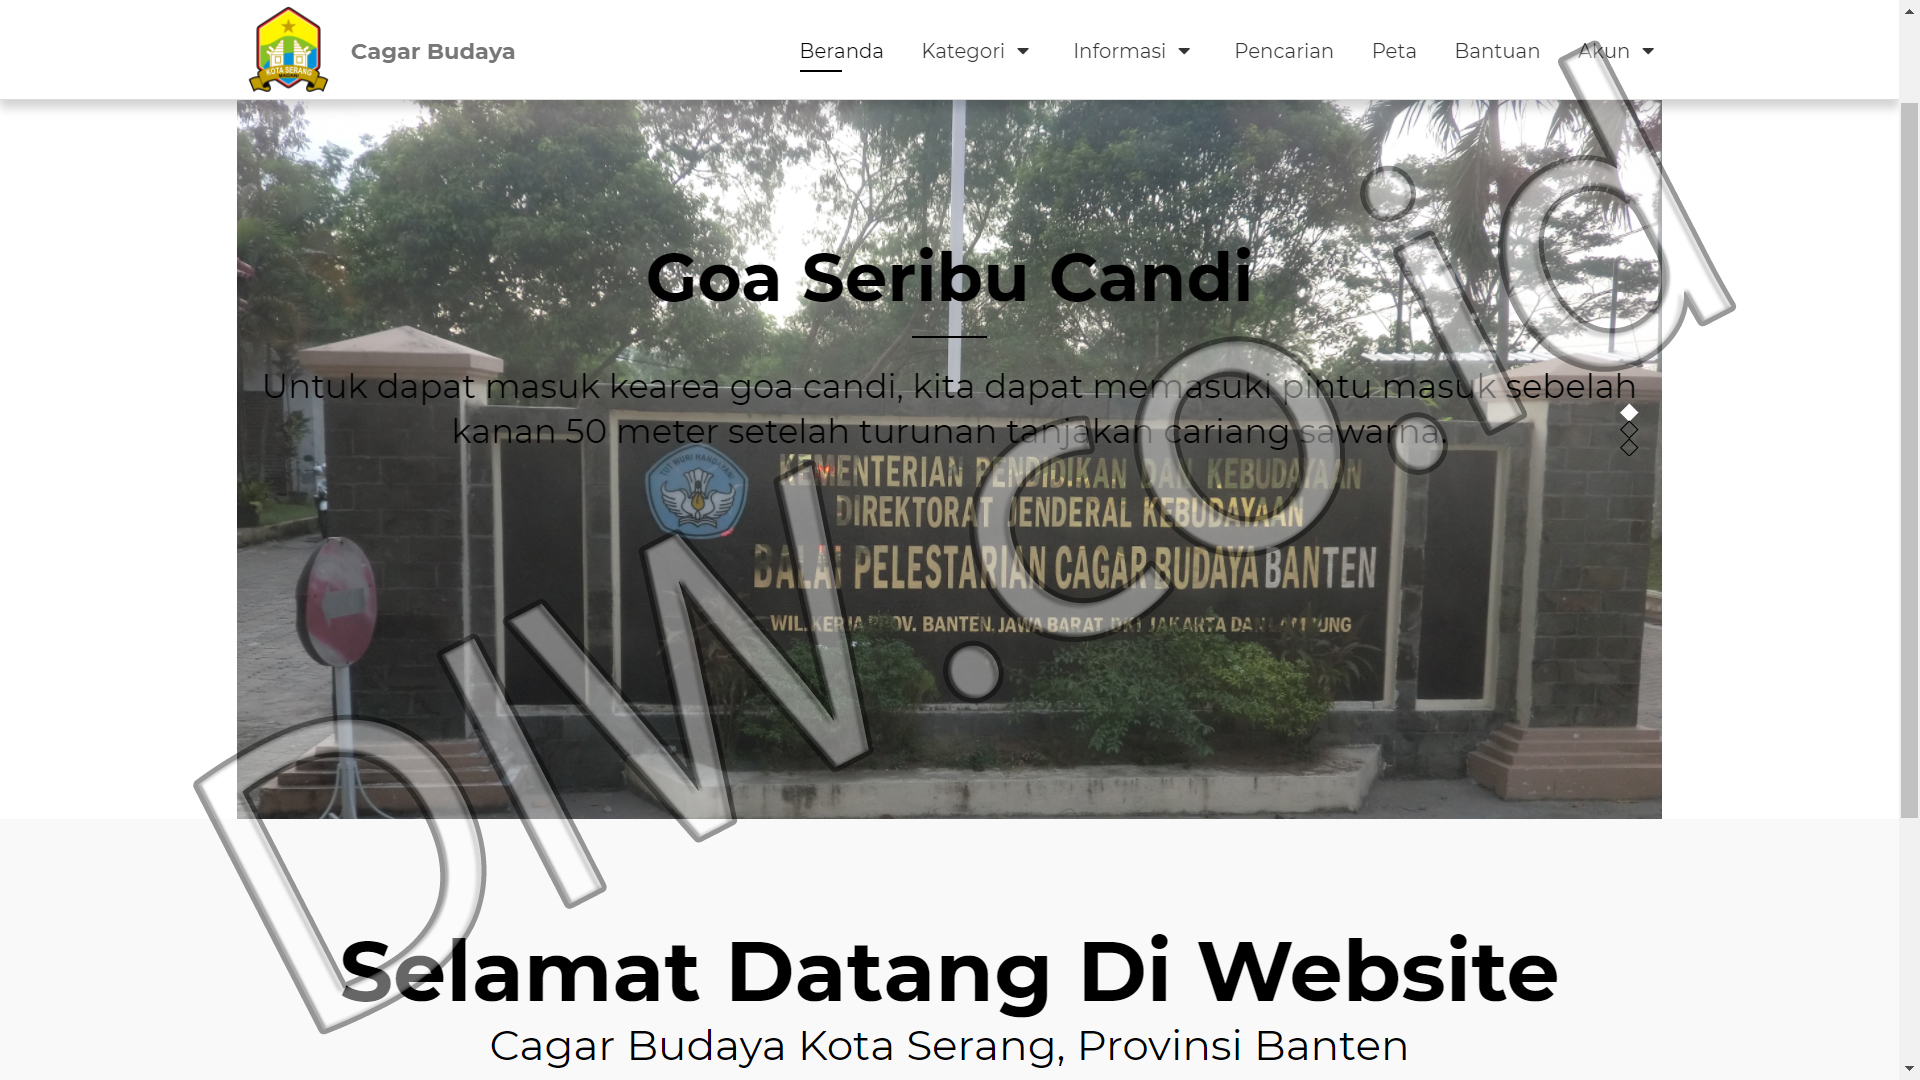 Portfolio 1 - Cagar Budaya - Andri Sunardi - Freelancer - Web Developer - CEO DIW.co.id